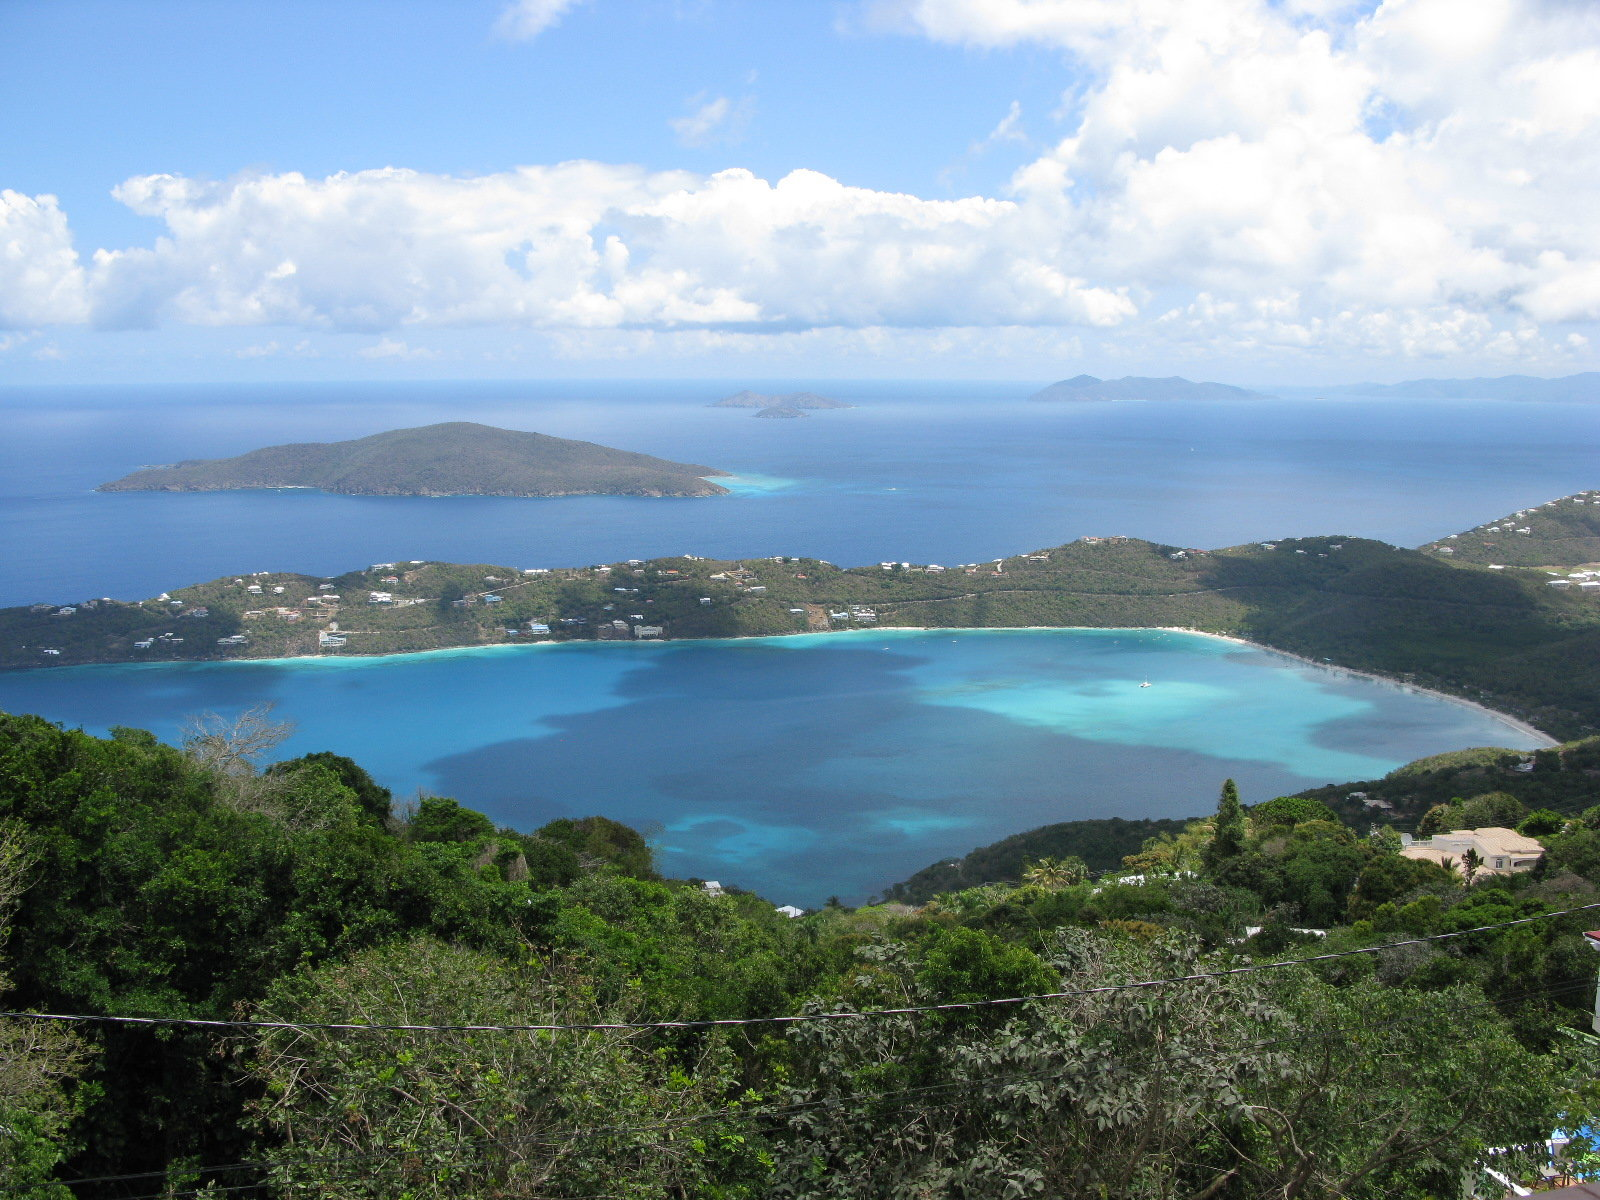 Magen's Bay from Mountaintop